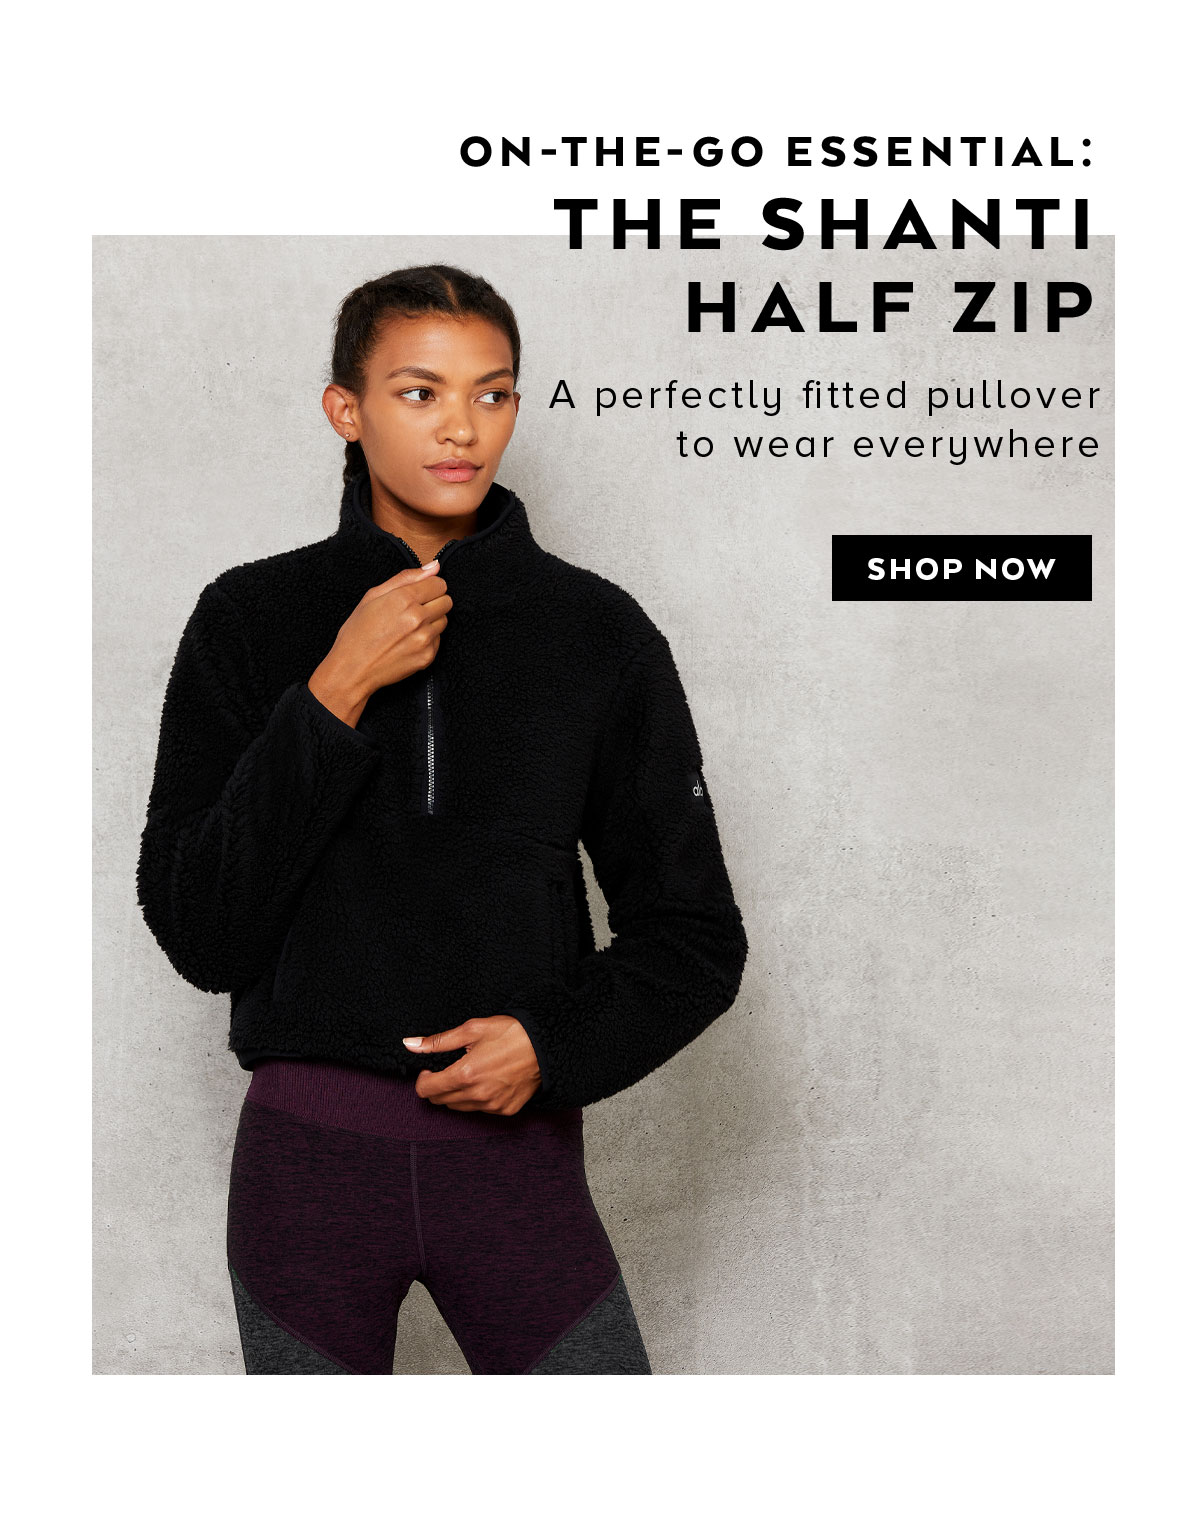 ON-THE-GO ESSENTIAL: THE SHANTI HALF ZIP. A perfectly fitted pullover to wear everywhere. SHOP NOW